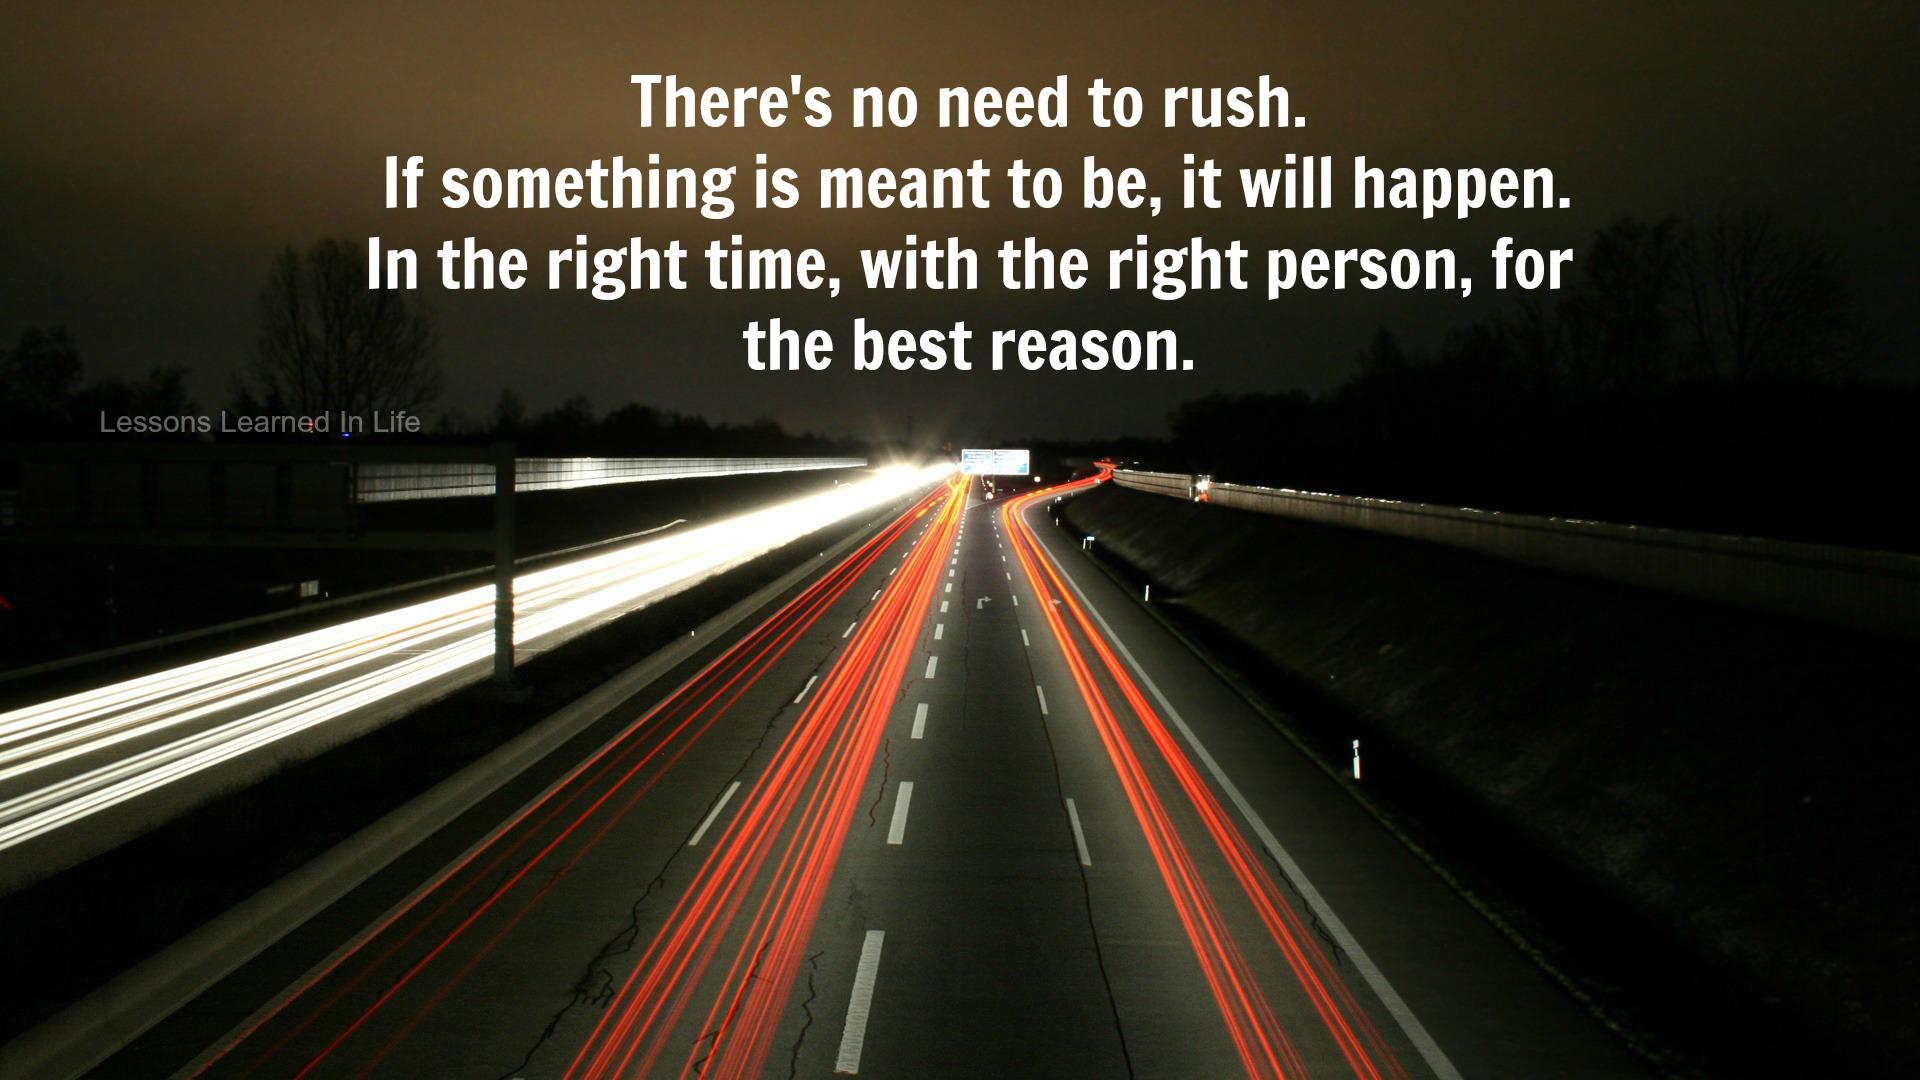 Quotes About Rushing To Judgment 26 Quotes